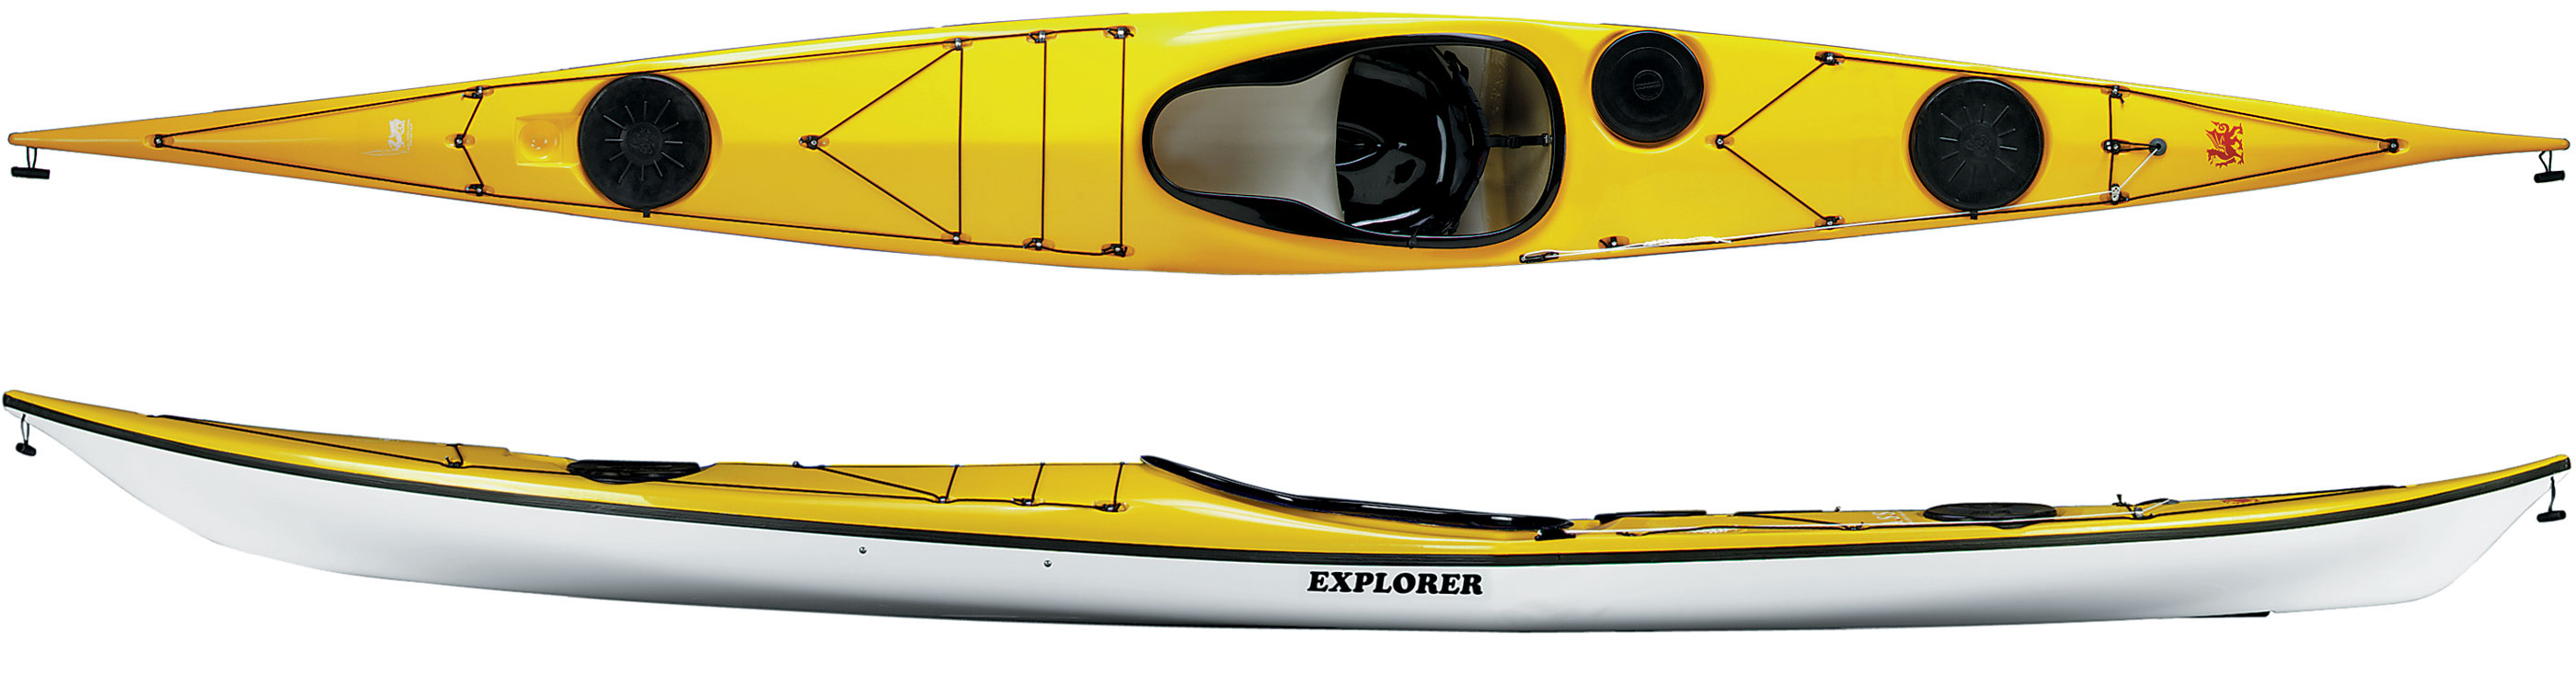 Kayaks: Explorer by Nigel Dennis Kayaks - Image 4485